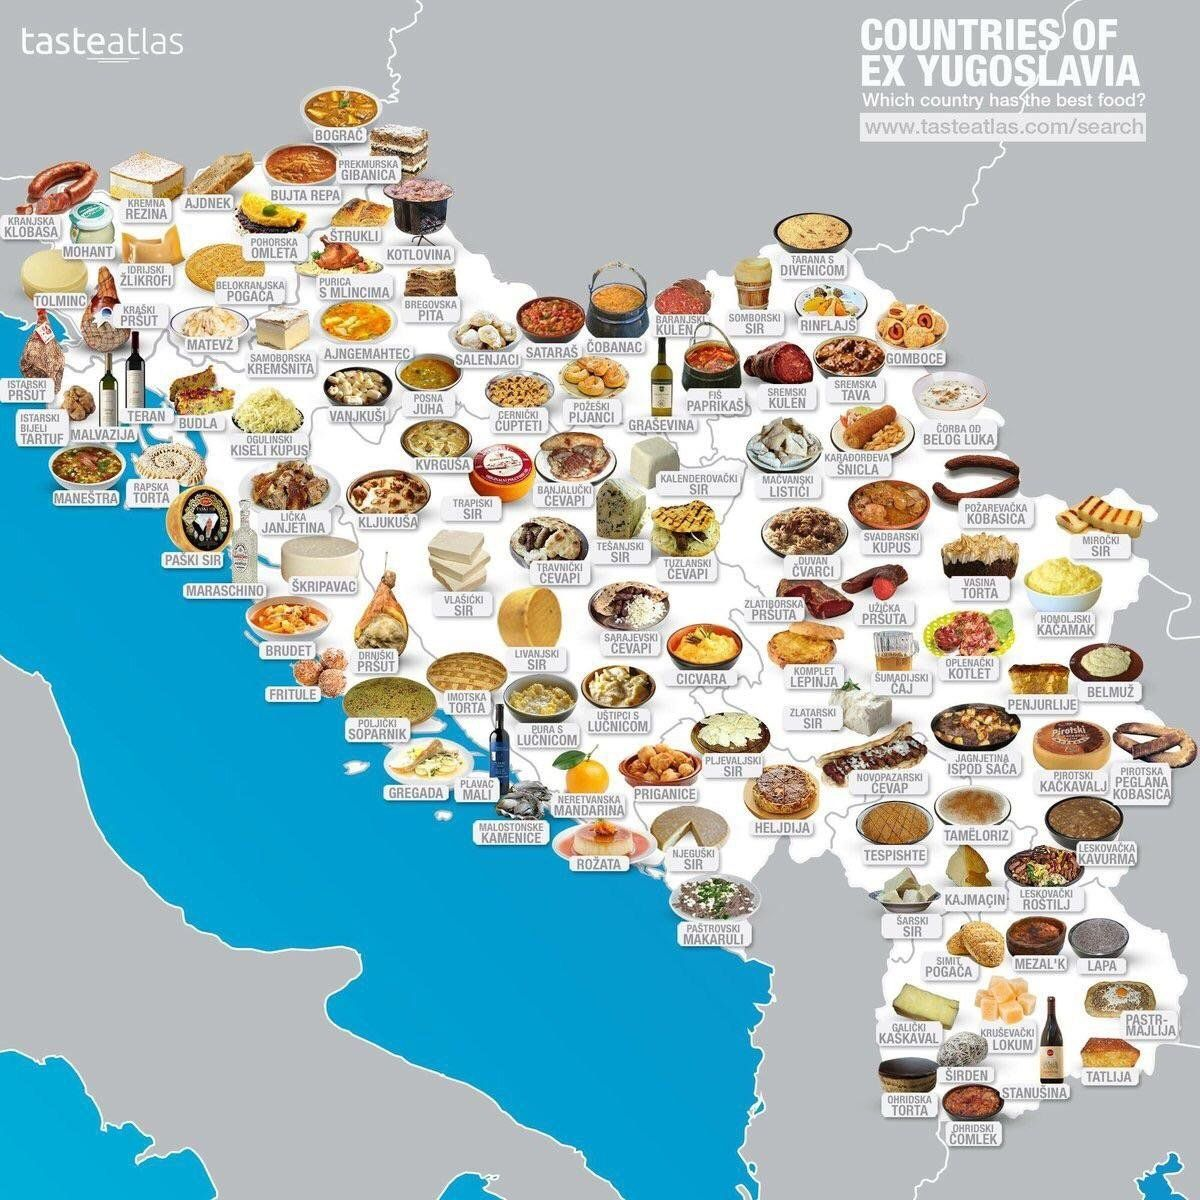 Food map of each ex-Yugoslavian country's favorite dish